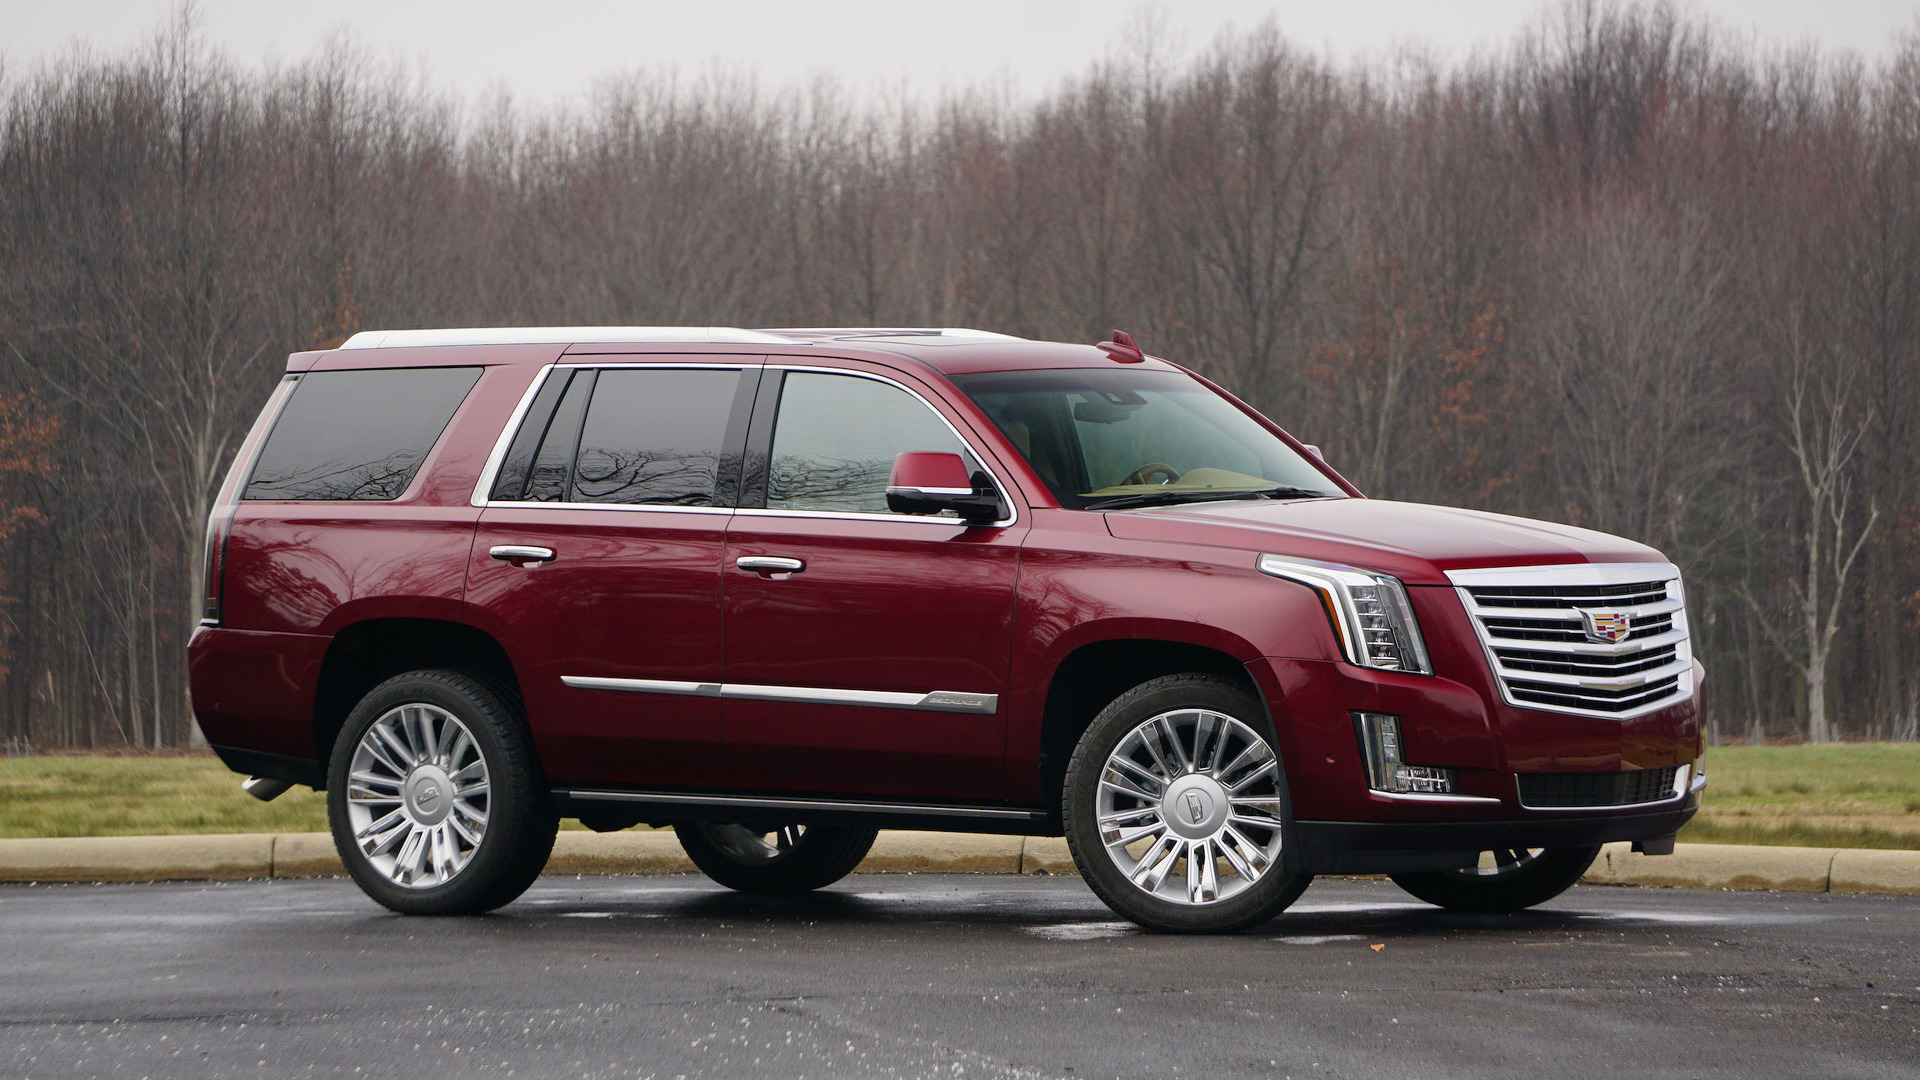 2017 Cadillac Escalade Review Beauty And Brawn